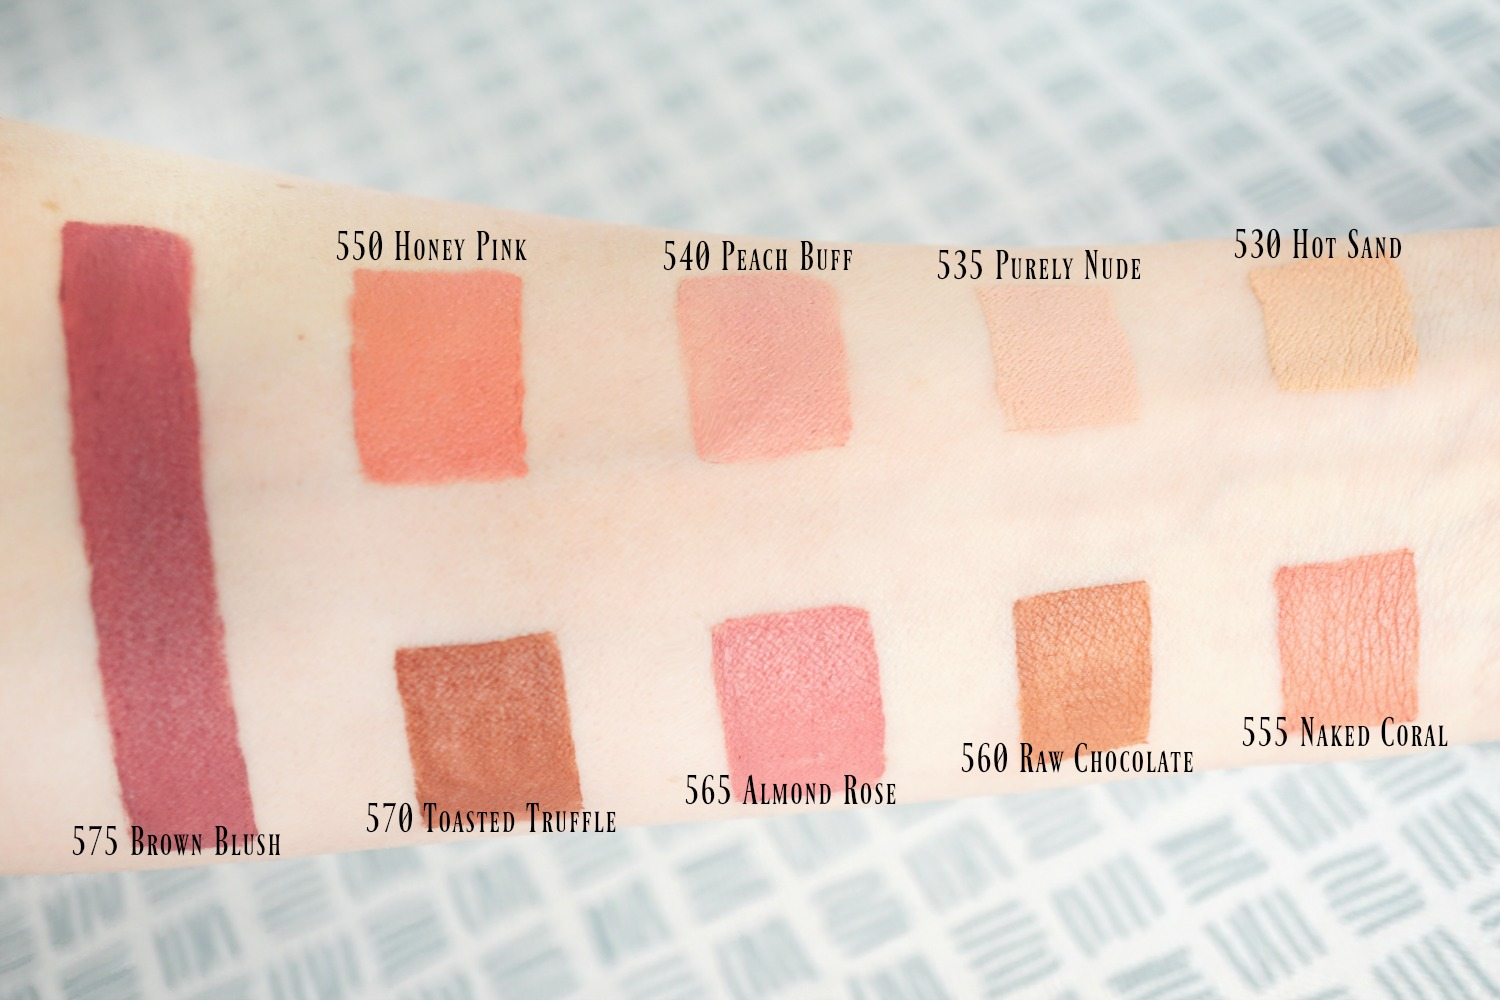 Maybelline Inti-Matte Nude Lipsticks - Swatches of All Colors